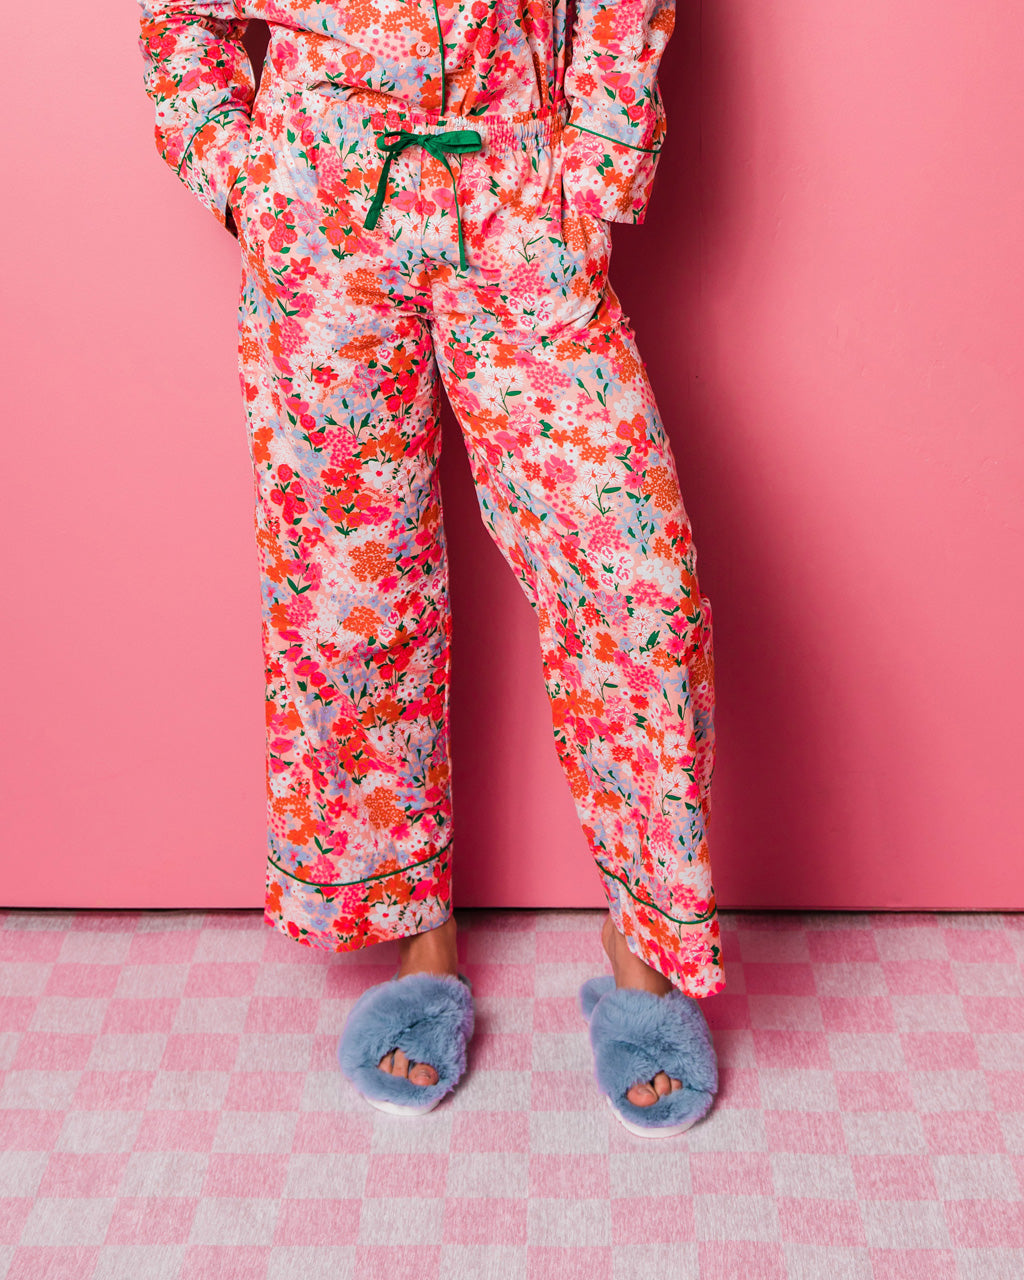 woman wearing bright multi color floral leisure pants with blue fuzzy slippers